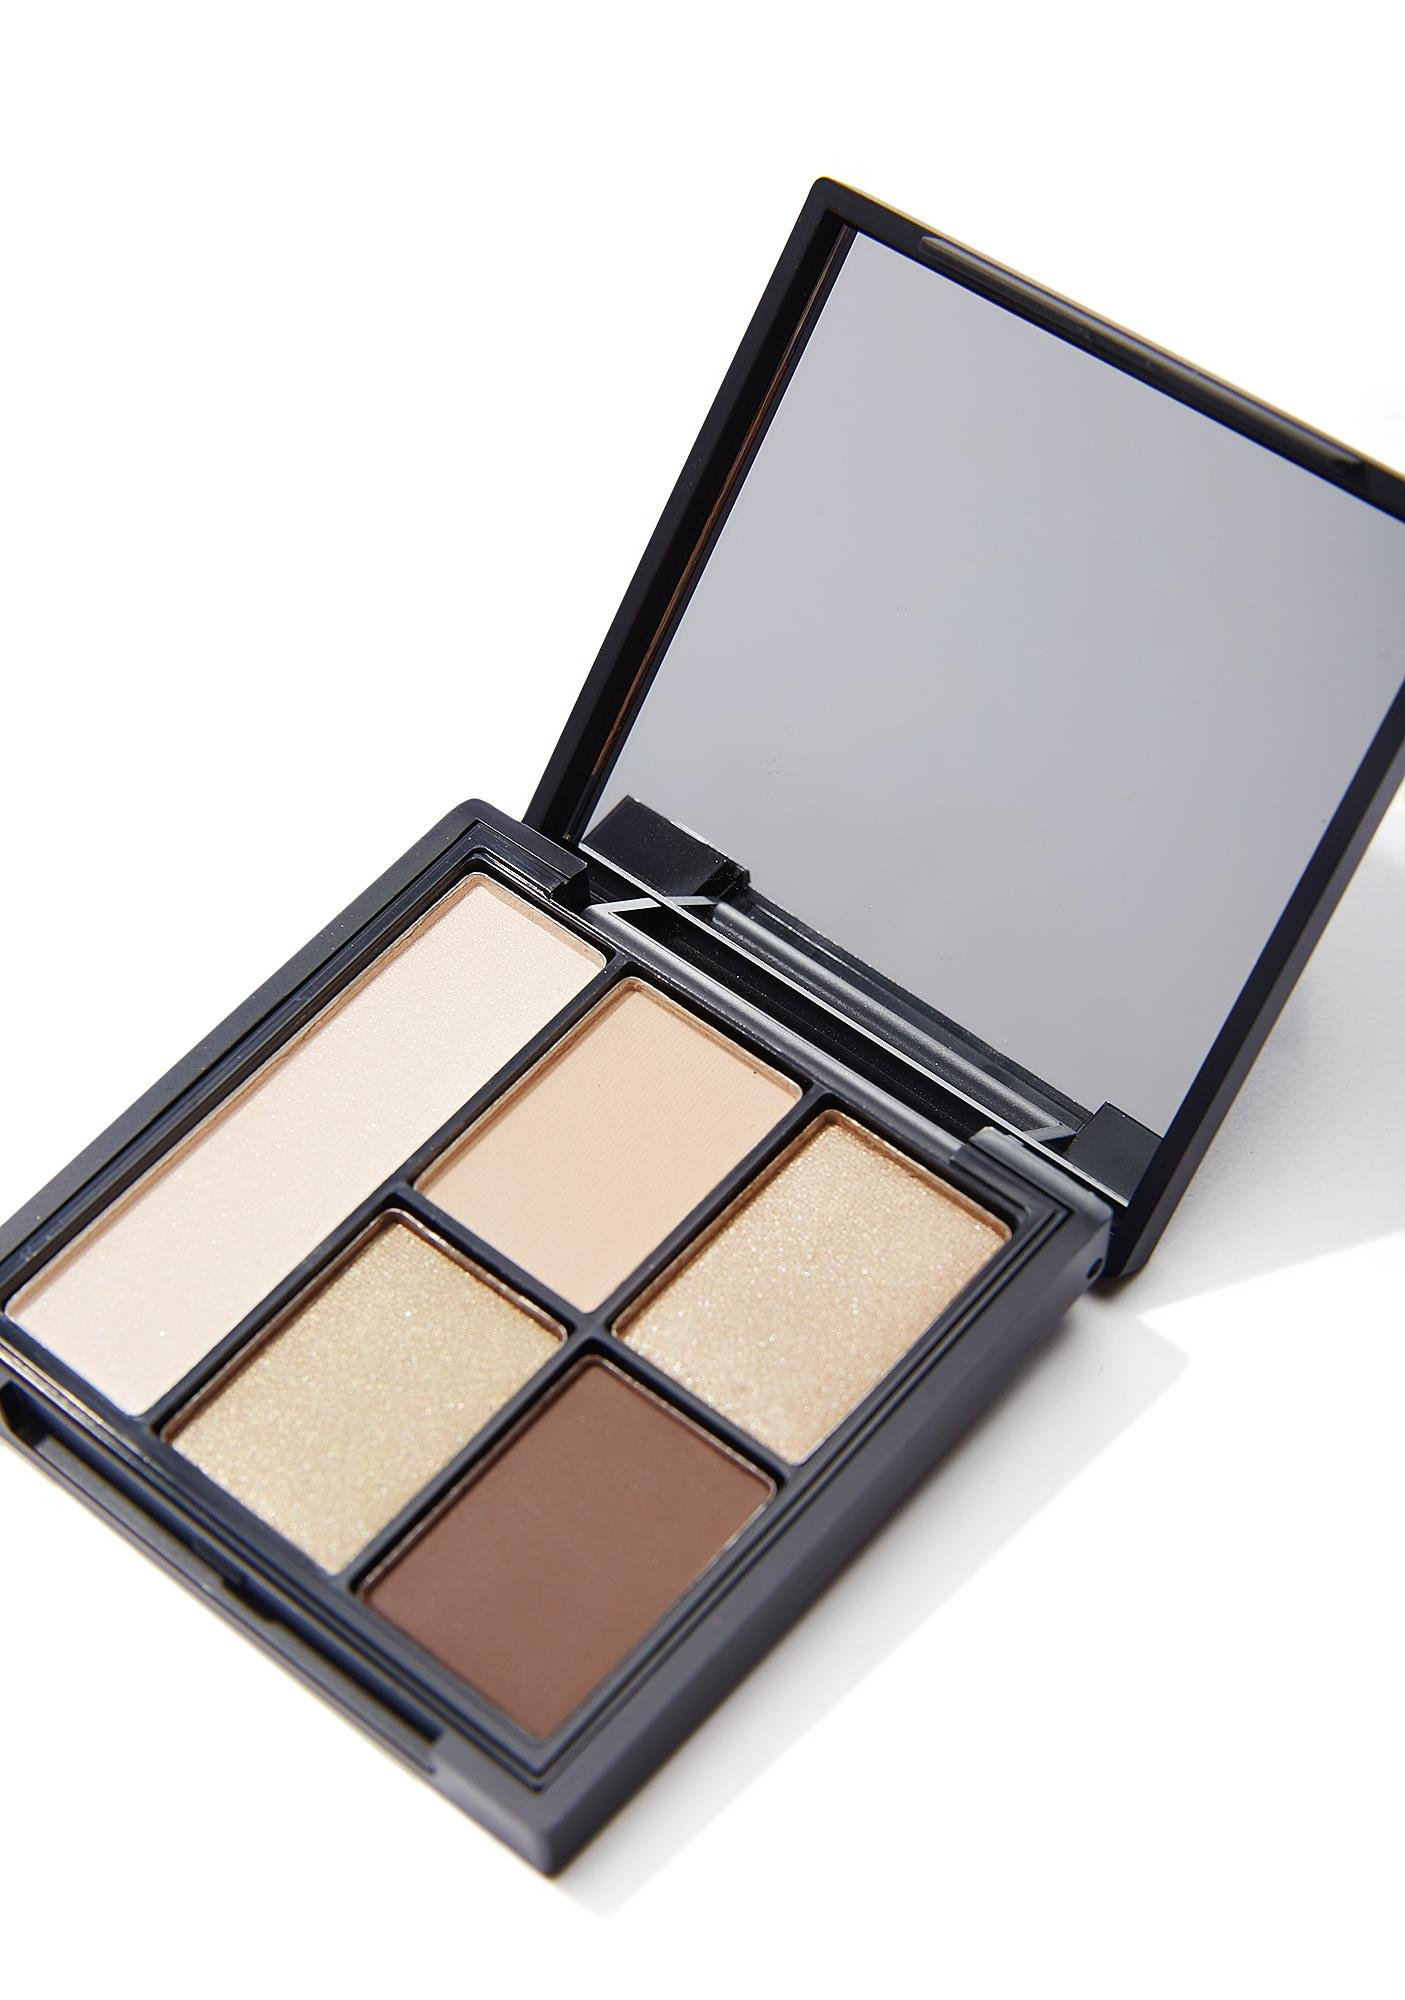 E.L.F Clay Eyeshadow Palette